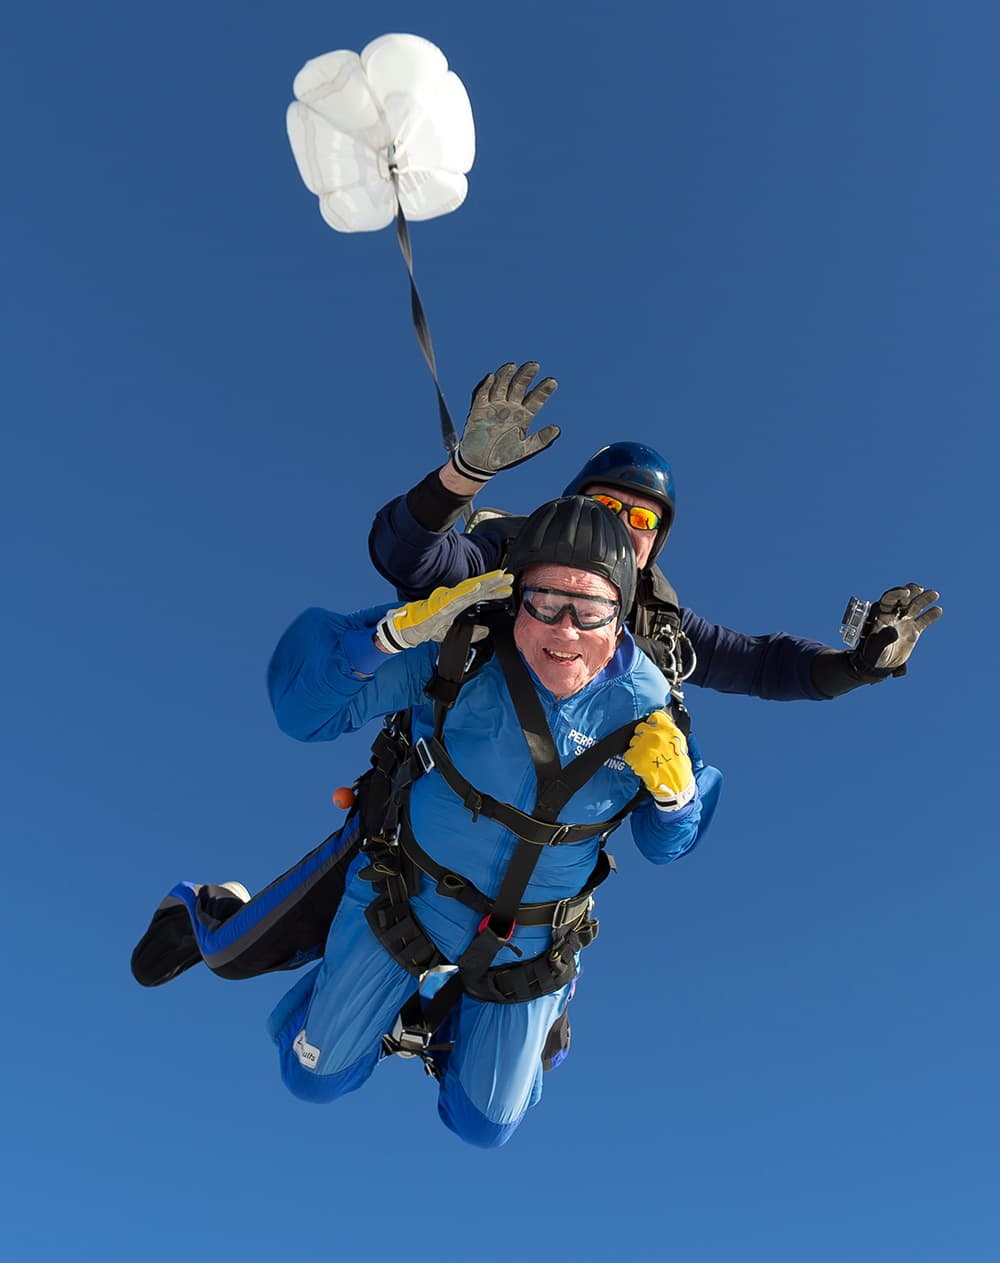 Vernon Maynard, bottom, skydives with instuctor James Perez to celebrate his 100th birthday over Perris, Calif.